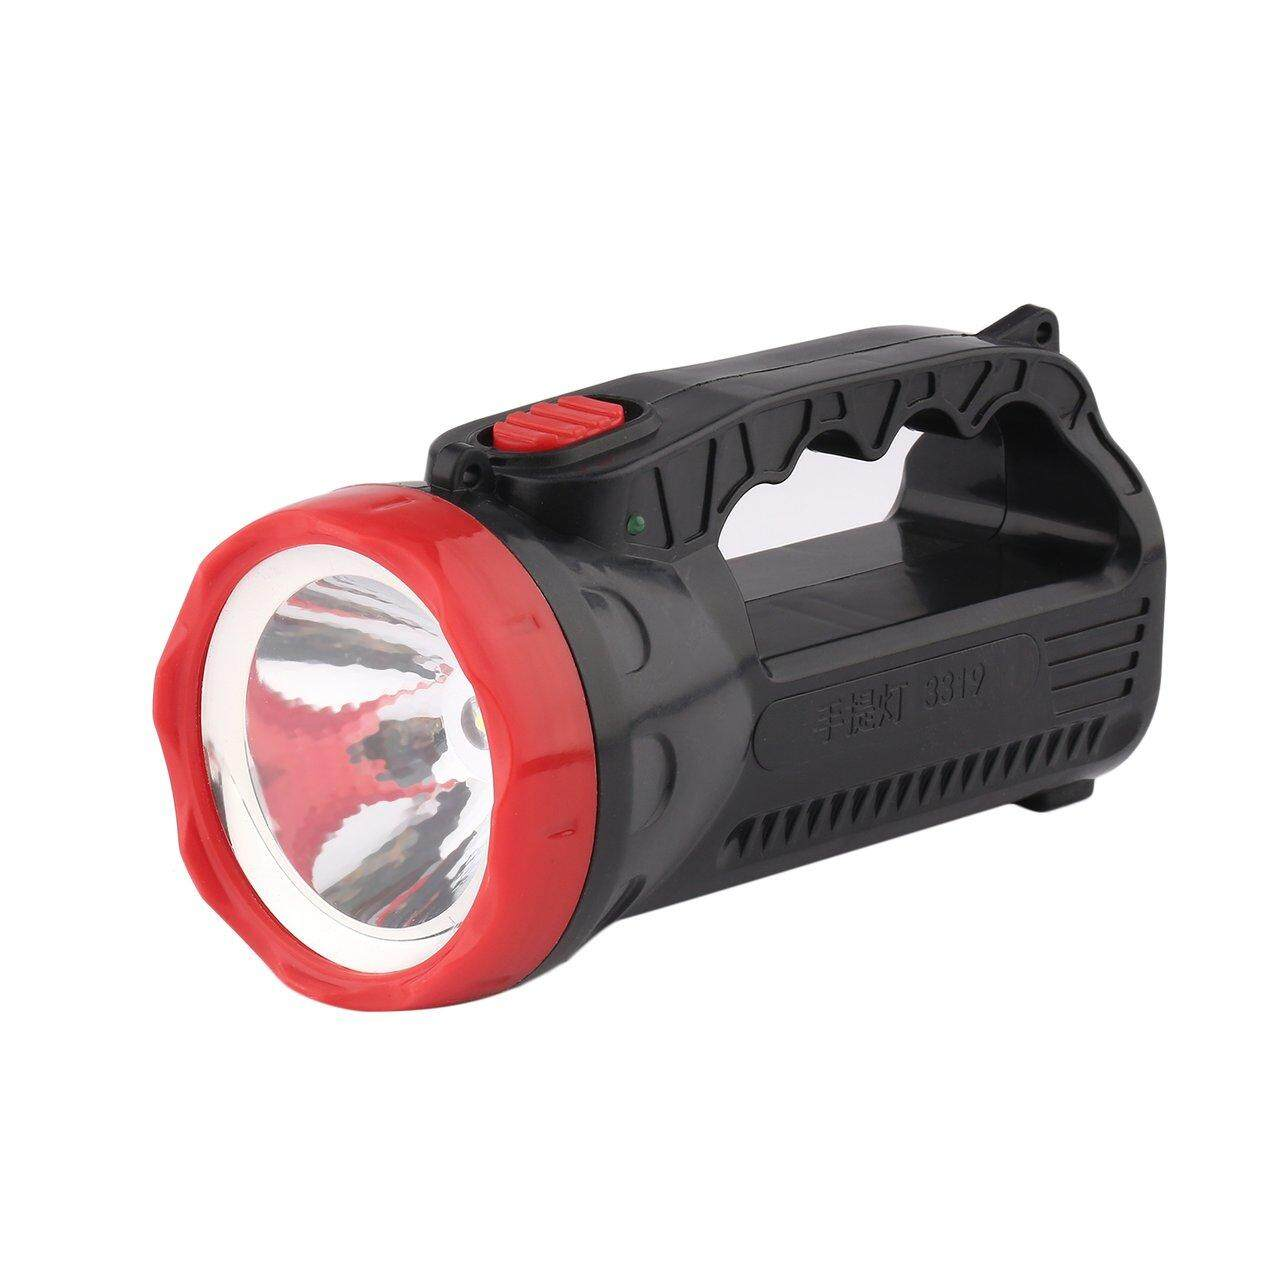 GOOD Outdoor LED Bright Charging Strong Light Flashlight Torch Light One Lamp Head - intl